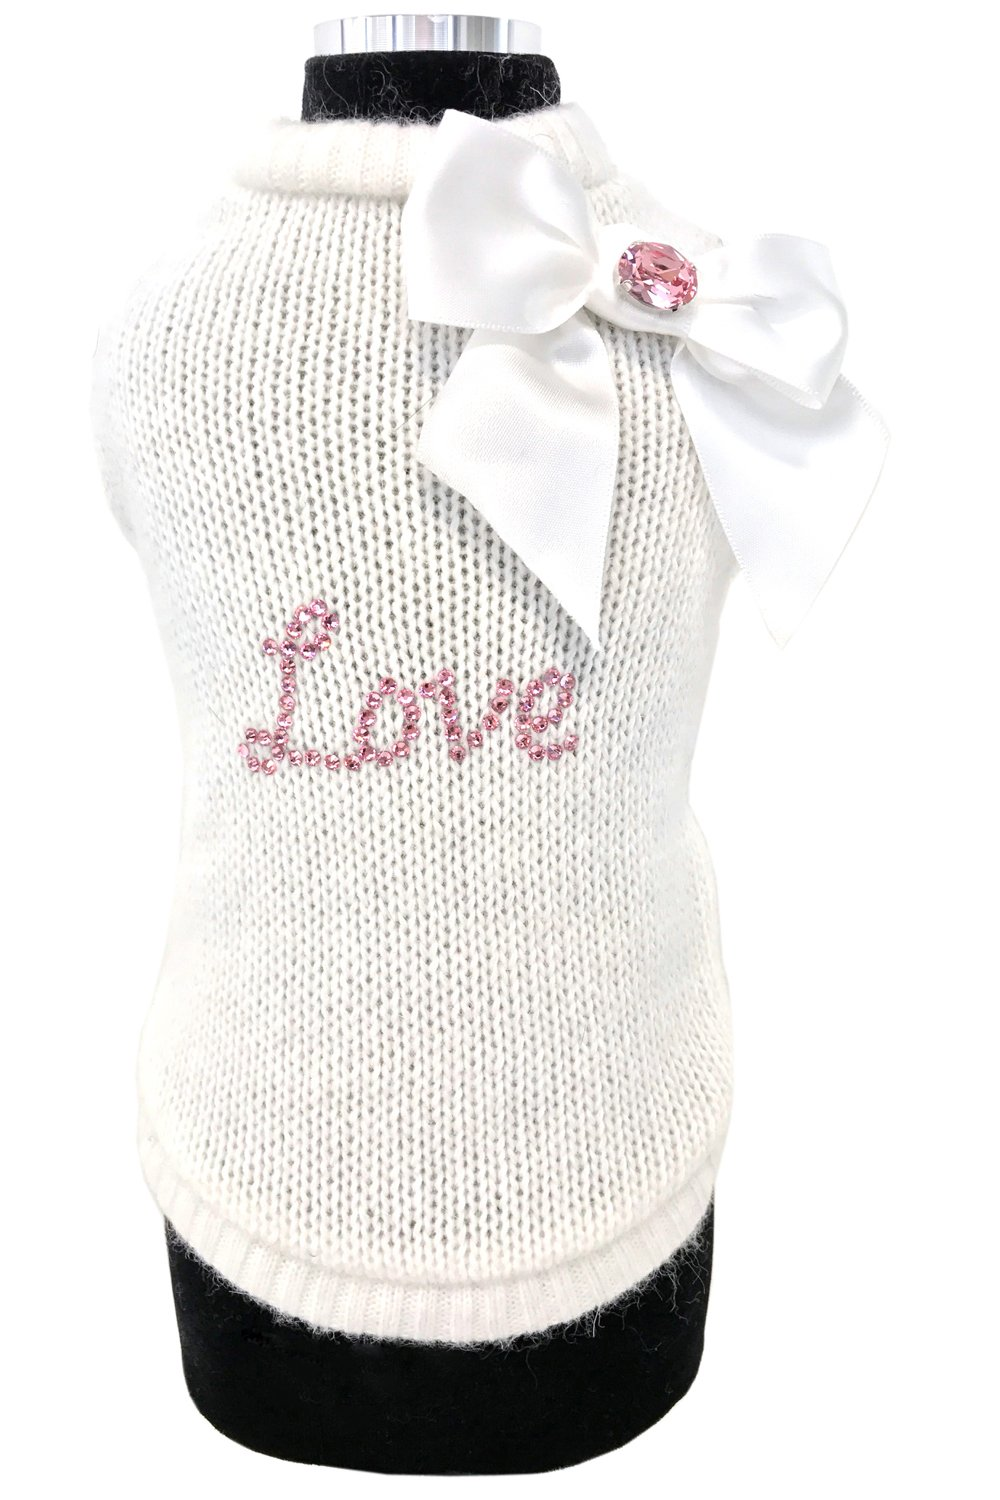 White M white M Trilly tutti Brilli Connie, dog's jumper with Swarovski crystal decoration, white, M